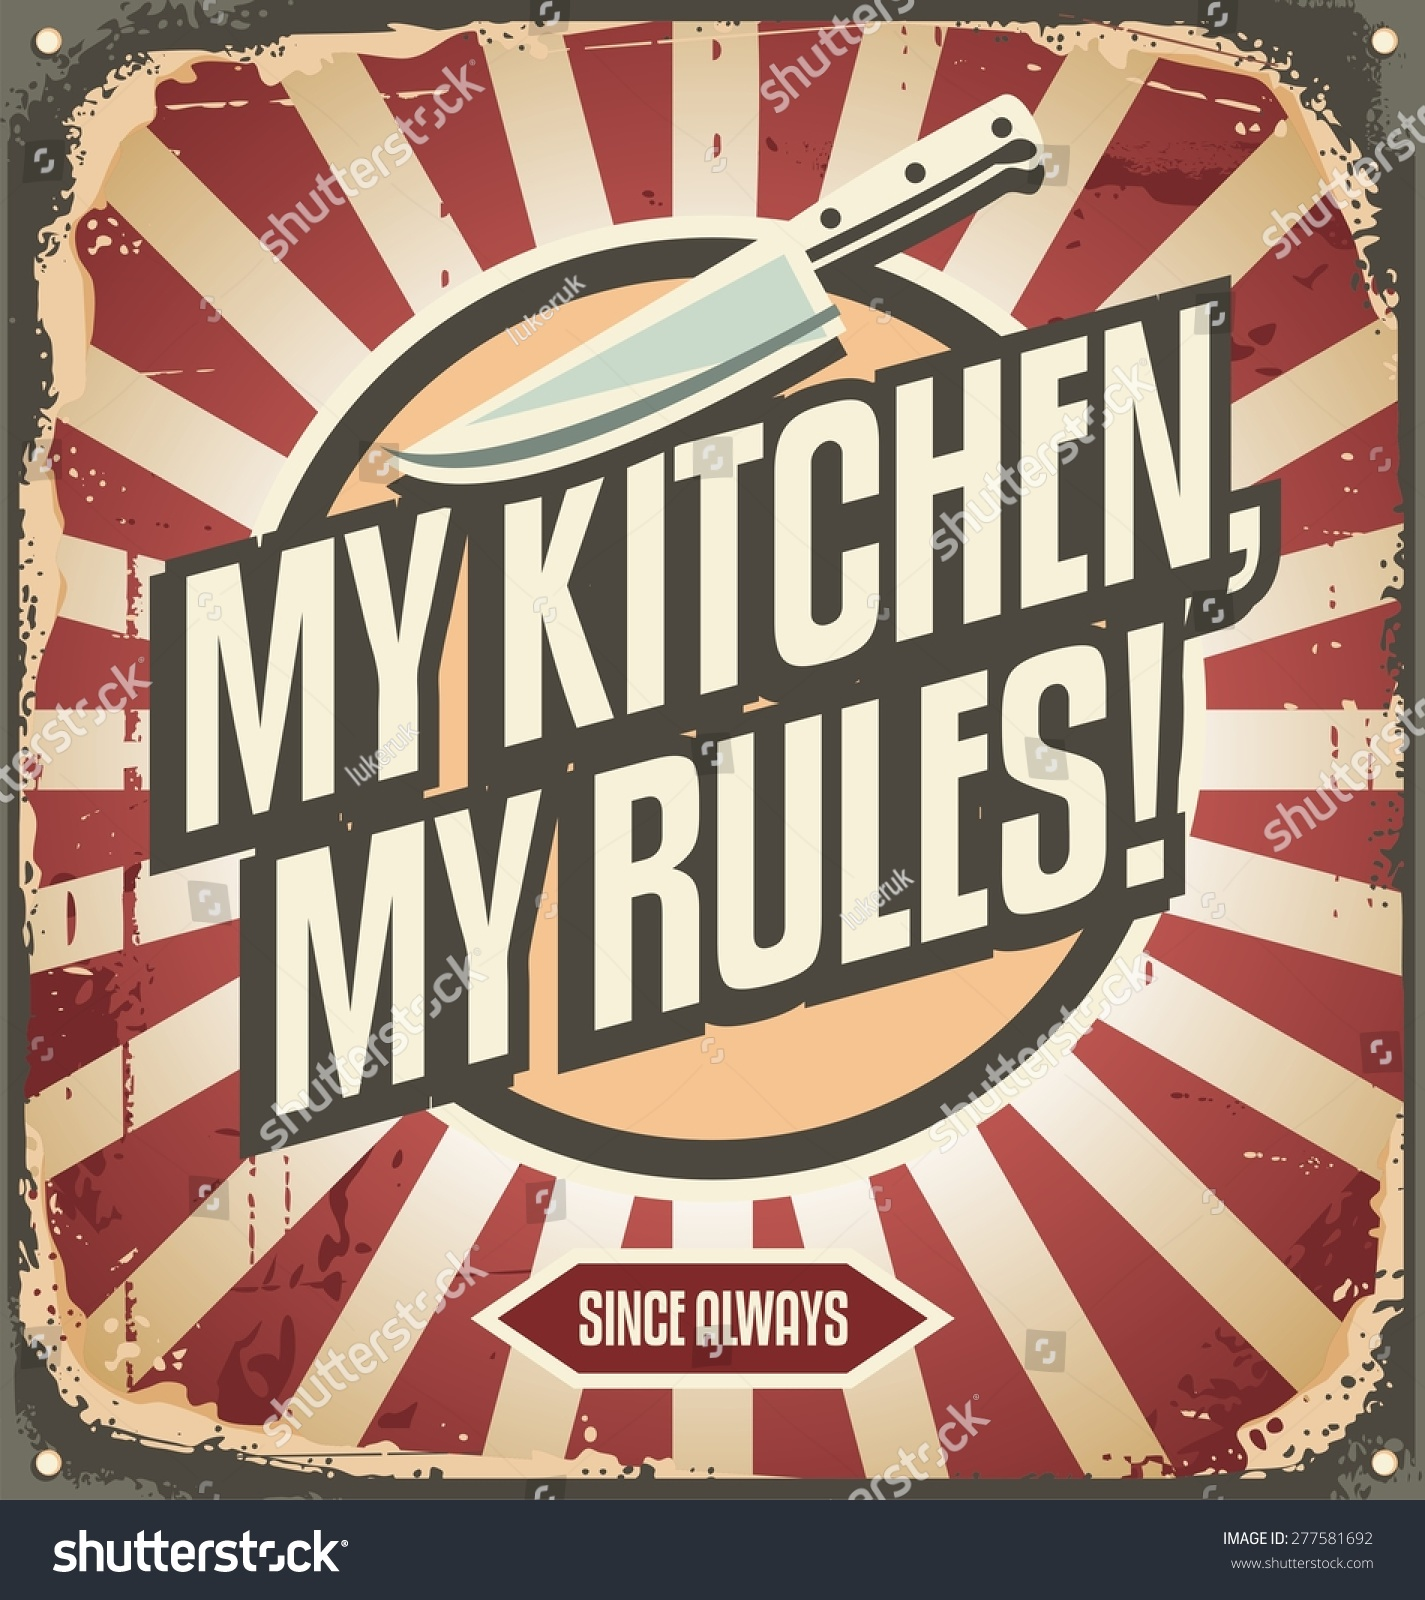 Poster design rules - Vintage Sign With Promotional Message My Kitchen My Rules Retro Poster Design Template